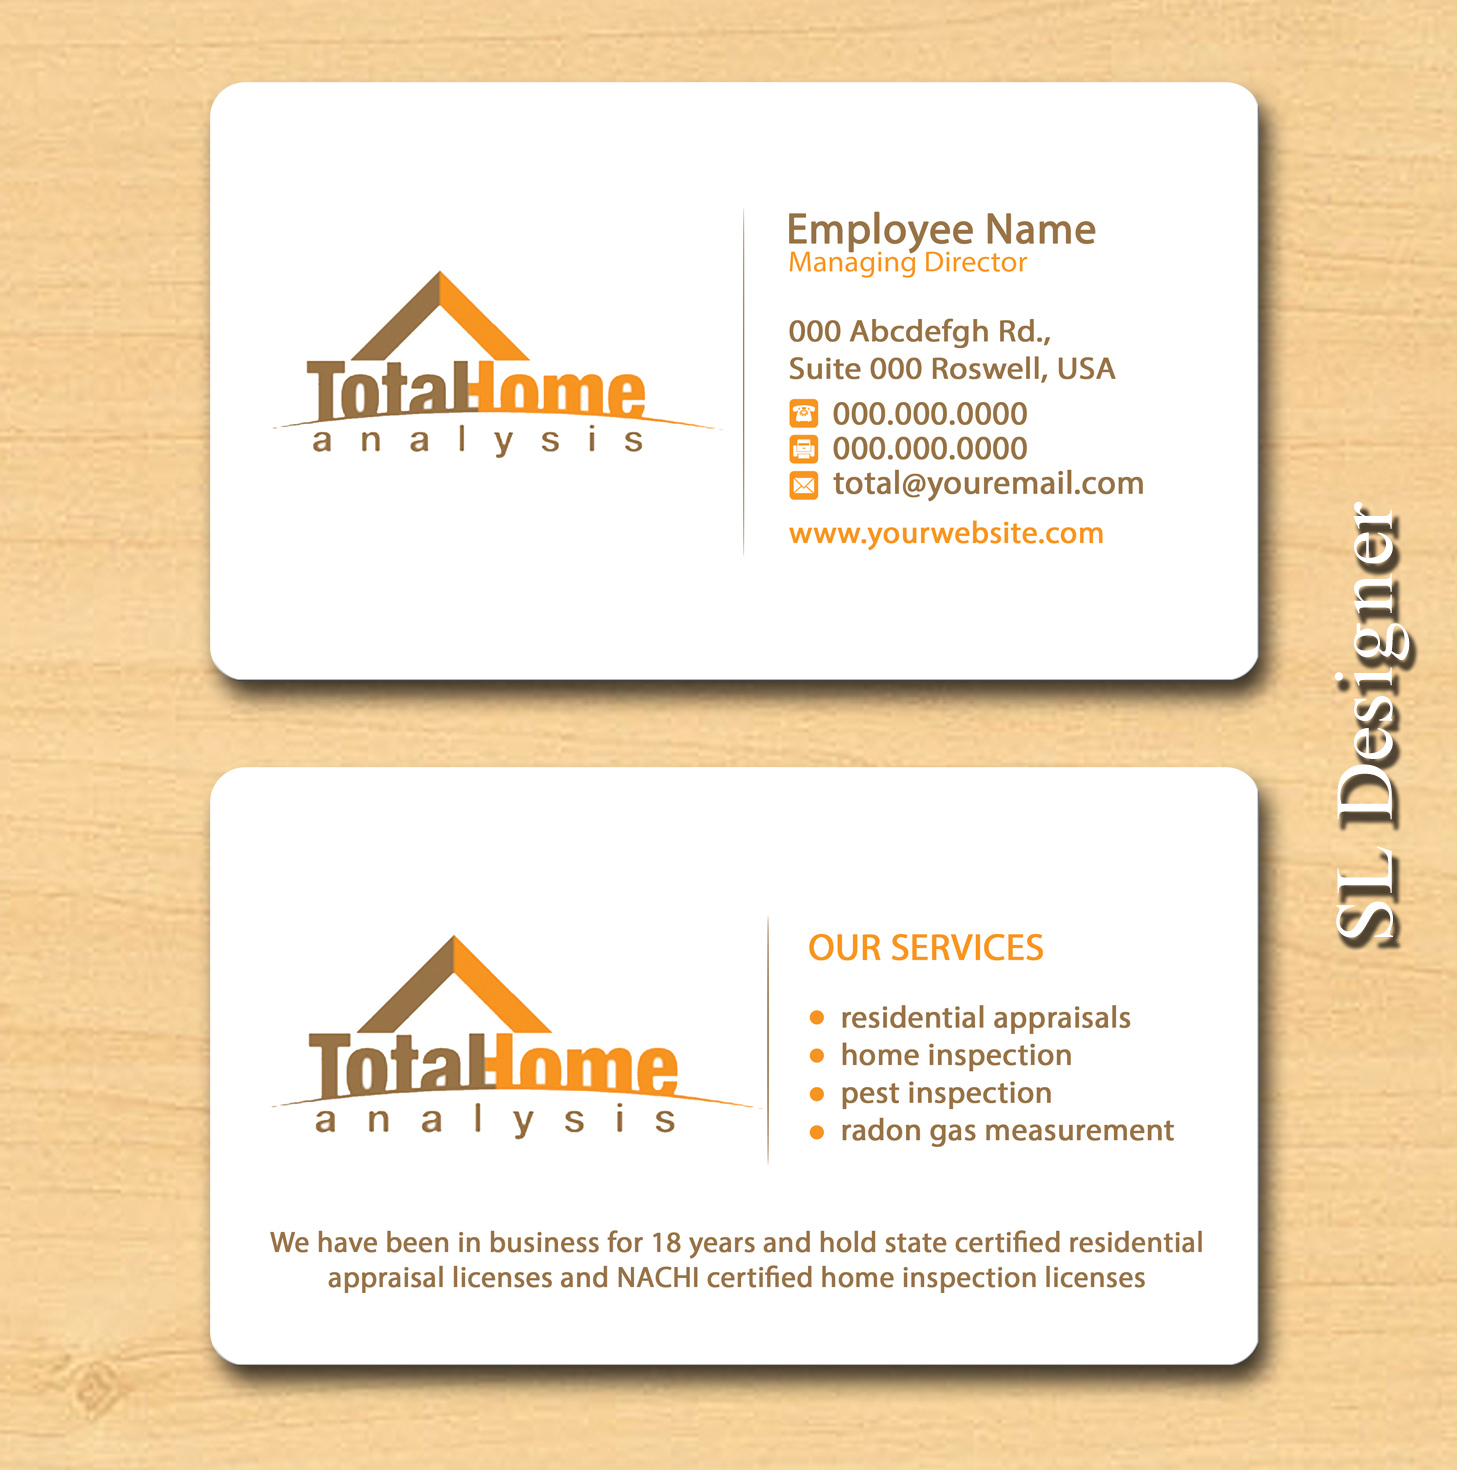 Business business card design for total home analysis by sl designer business business card design for total home analysis in united states design 7880649 colourmoves